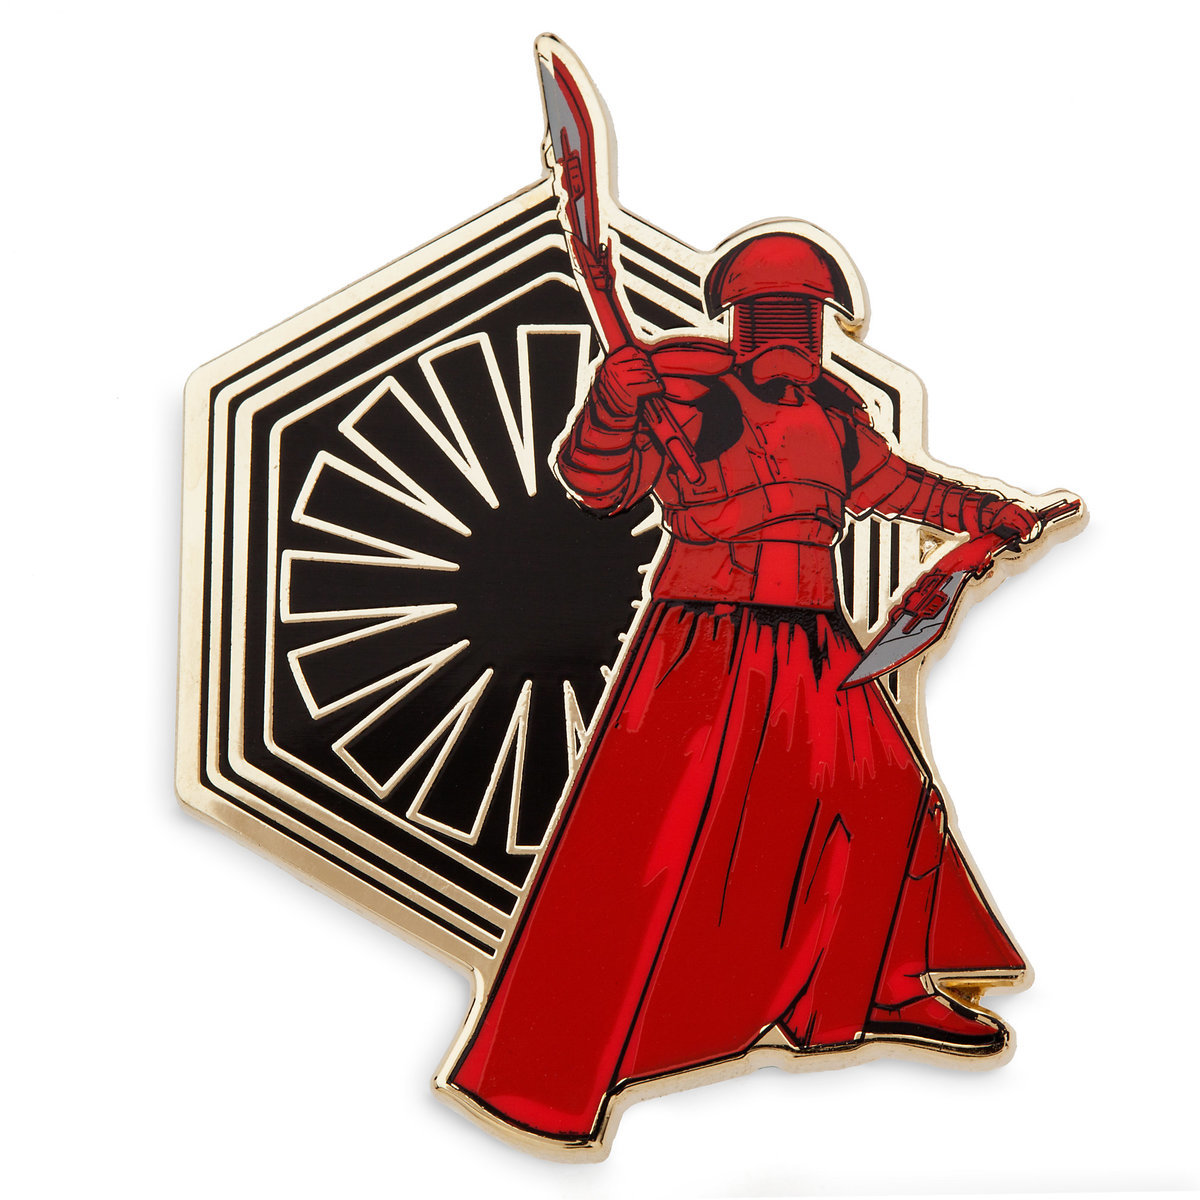 TLJ Praetorian Guard Pin & Lithograph Set 2